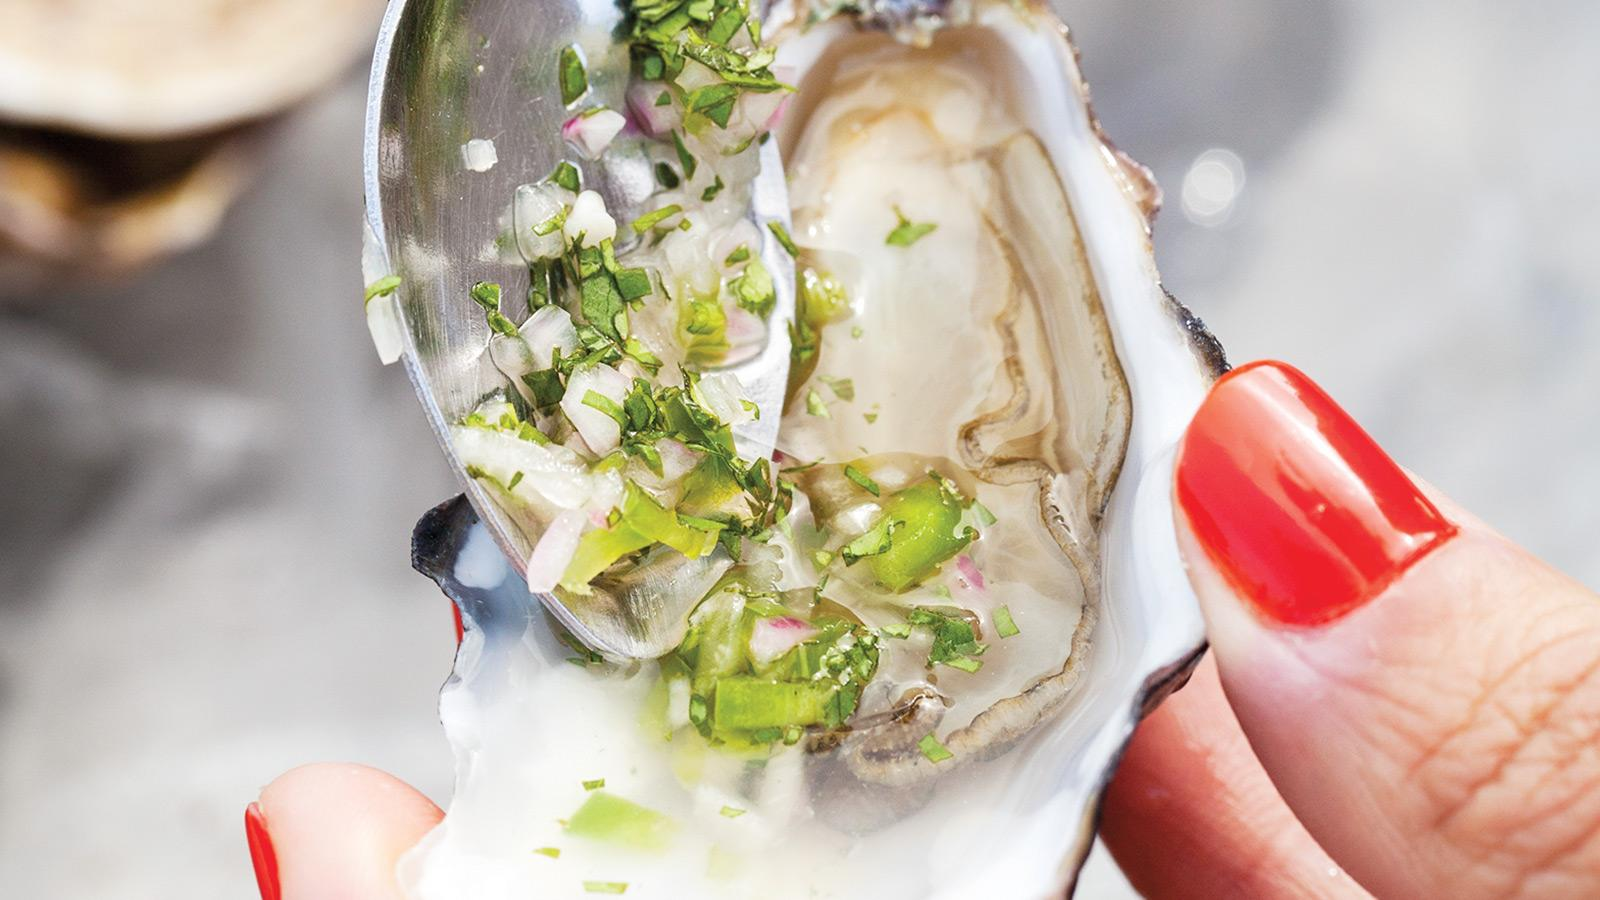 Raw Oysters With